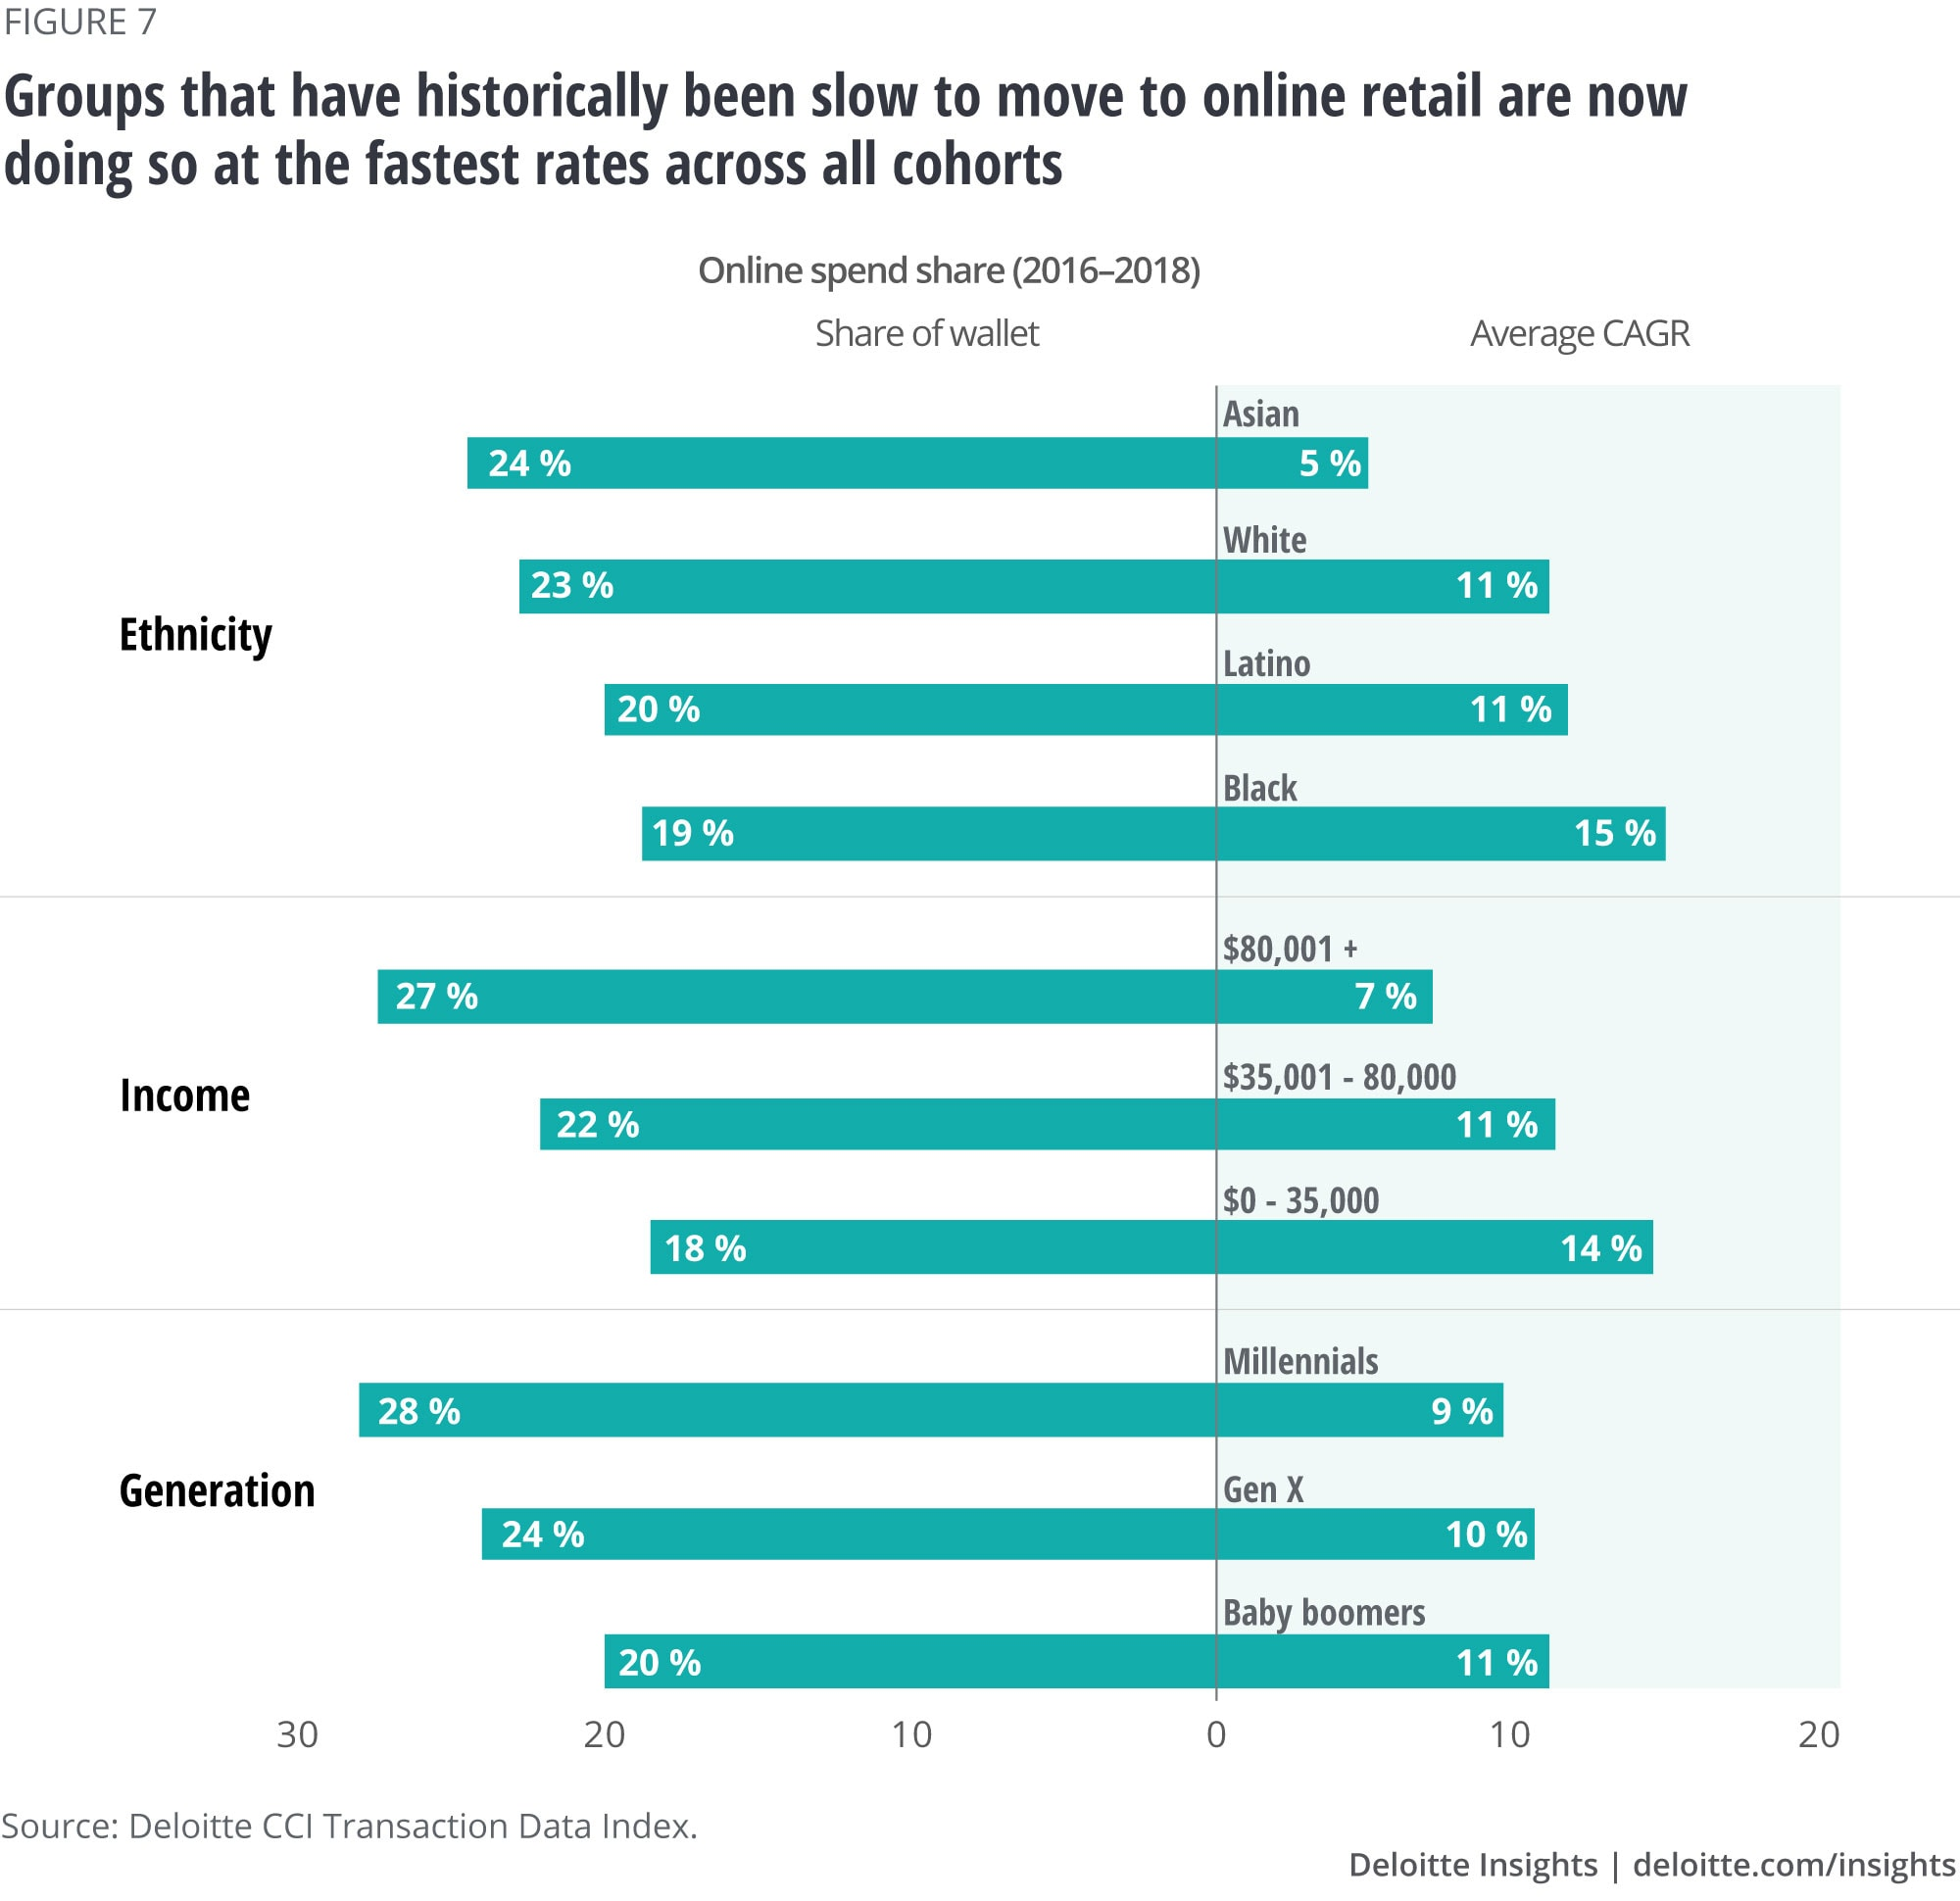 Groups that have historically been slow to move to online retail are now doing so at the fastest rates across all cohorts